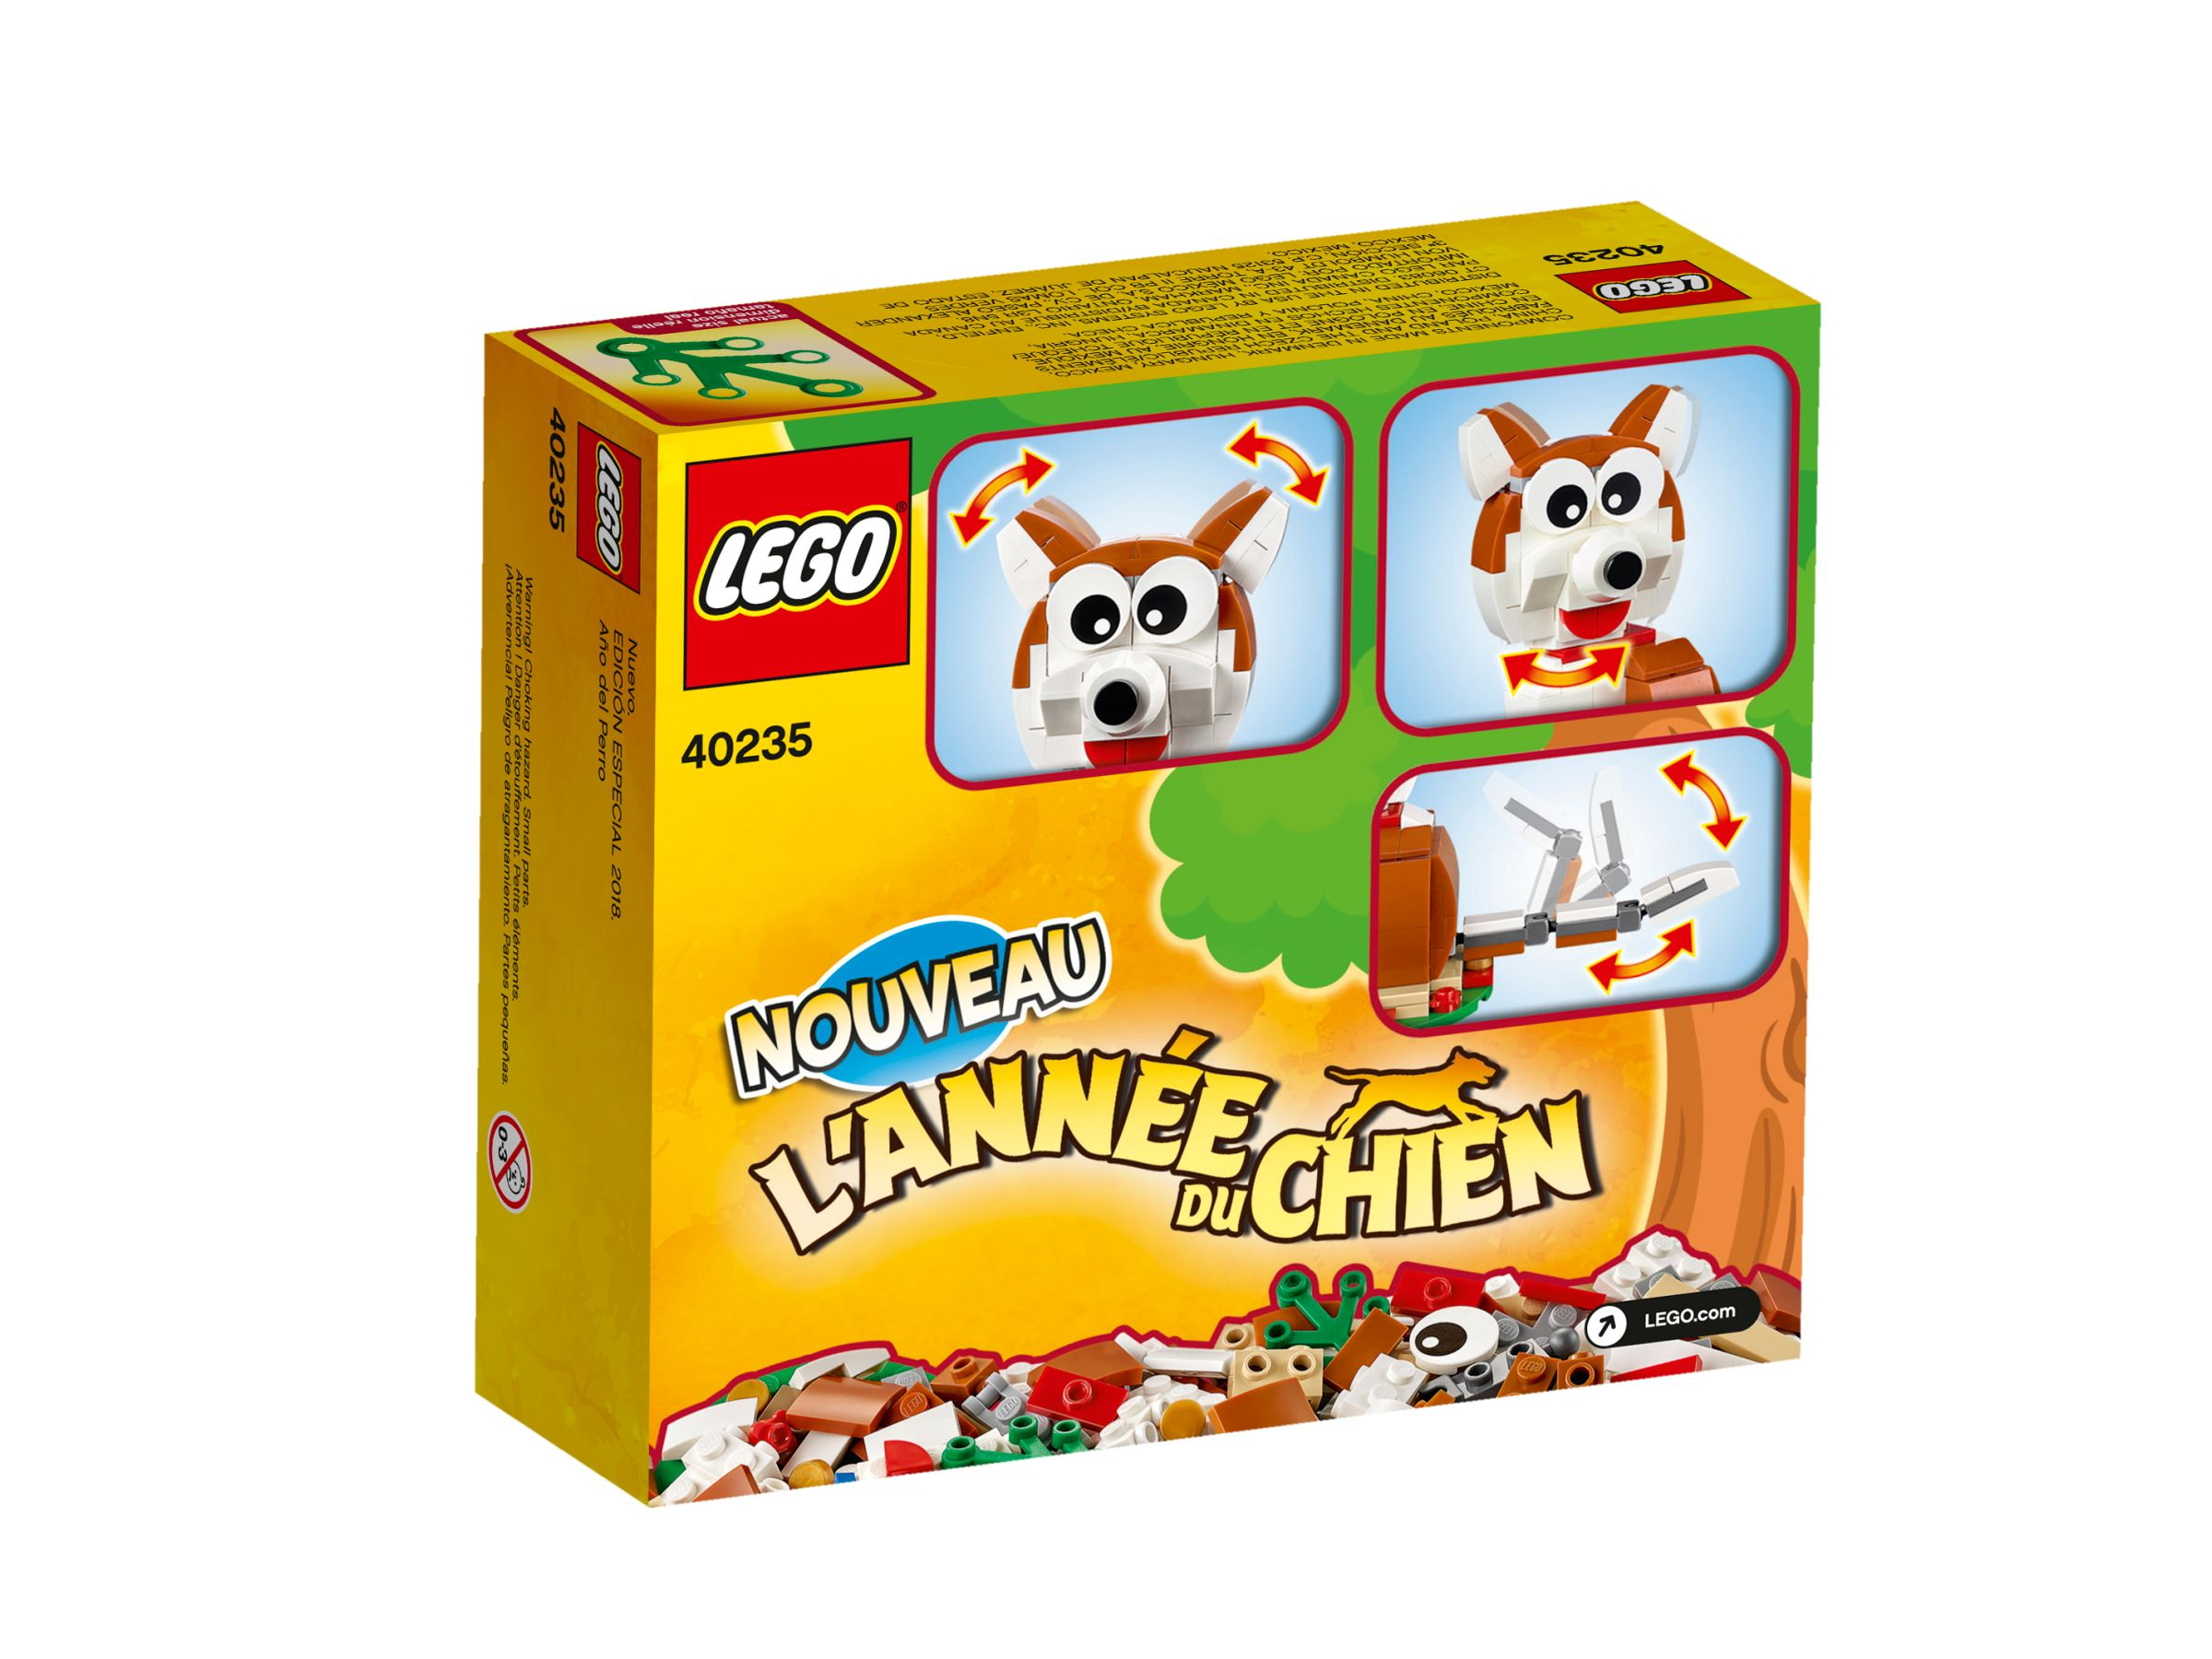 LEGO Miscellaneous 40235 Year of the Dog LEGO_40235_alt2.jpg